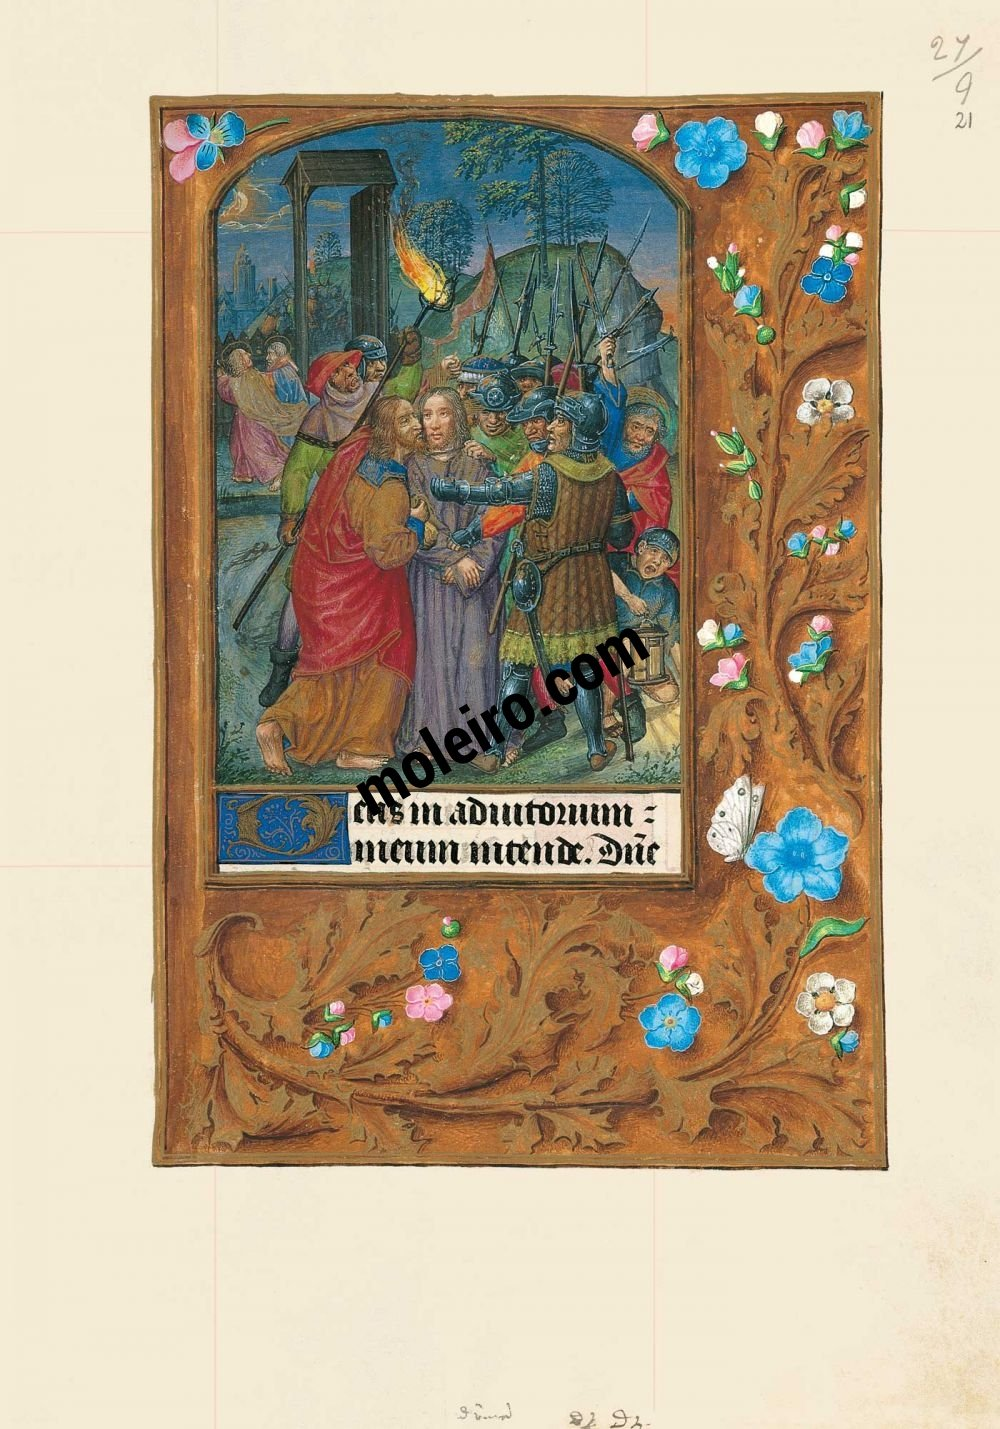 The Hours of Joanna I of Castile, Joanna the Mad (The London Rothschild Prayerbook) f. 21r, The kiss of Judas